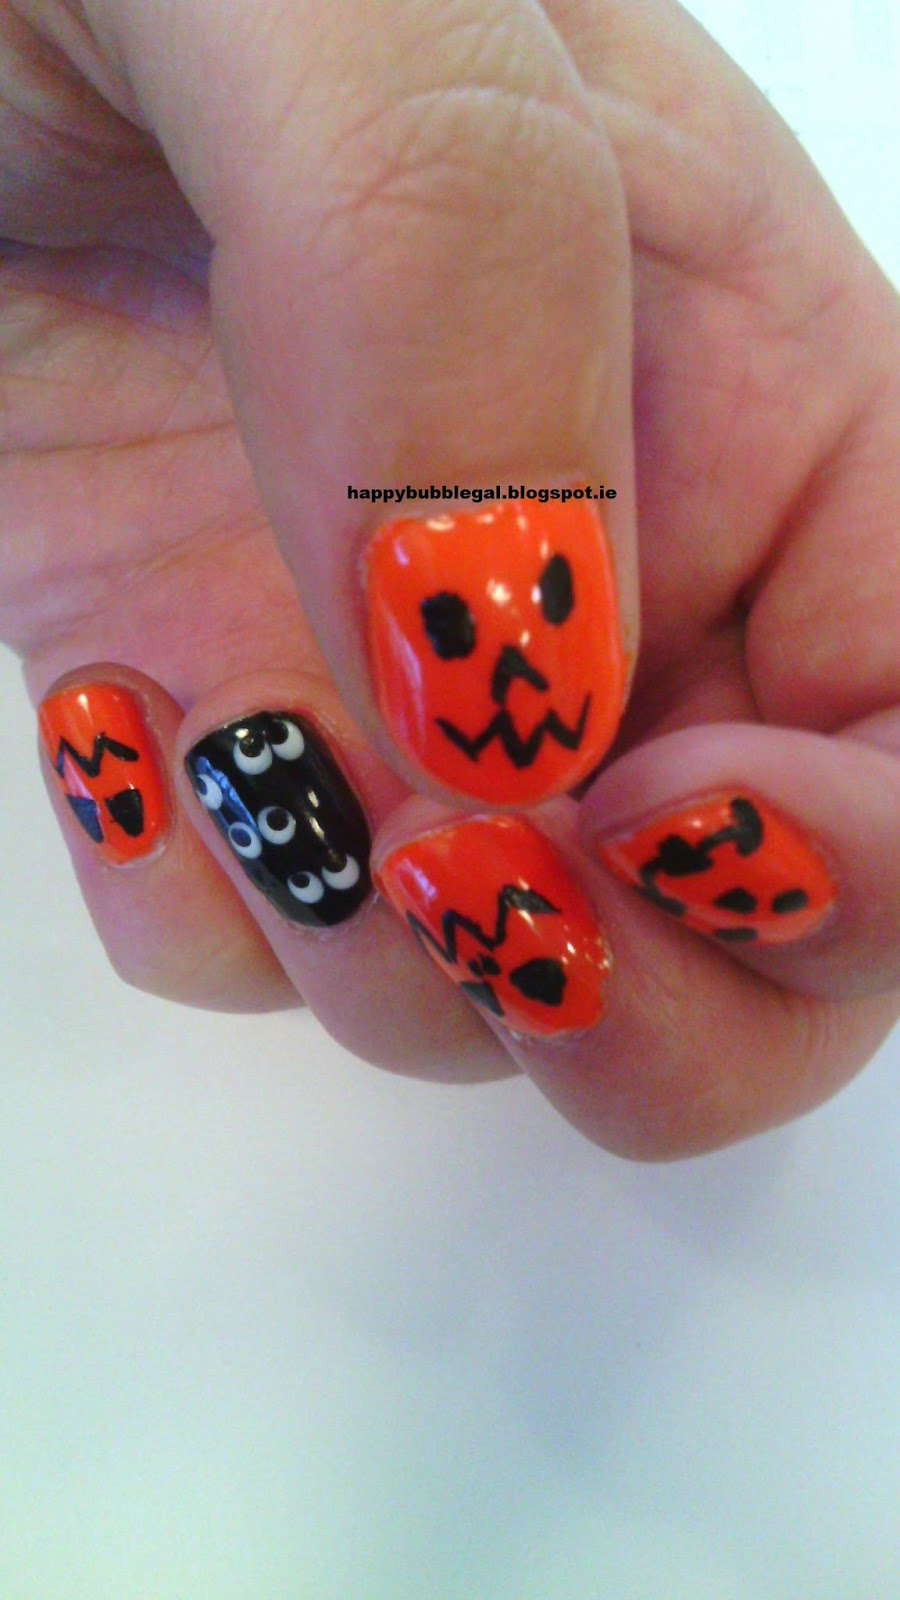 Happy Bubble Gal: Halloween Nail Art 2014 & Weigh In Week 4